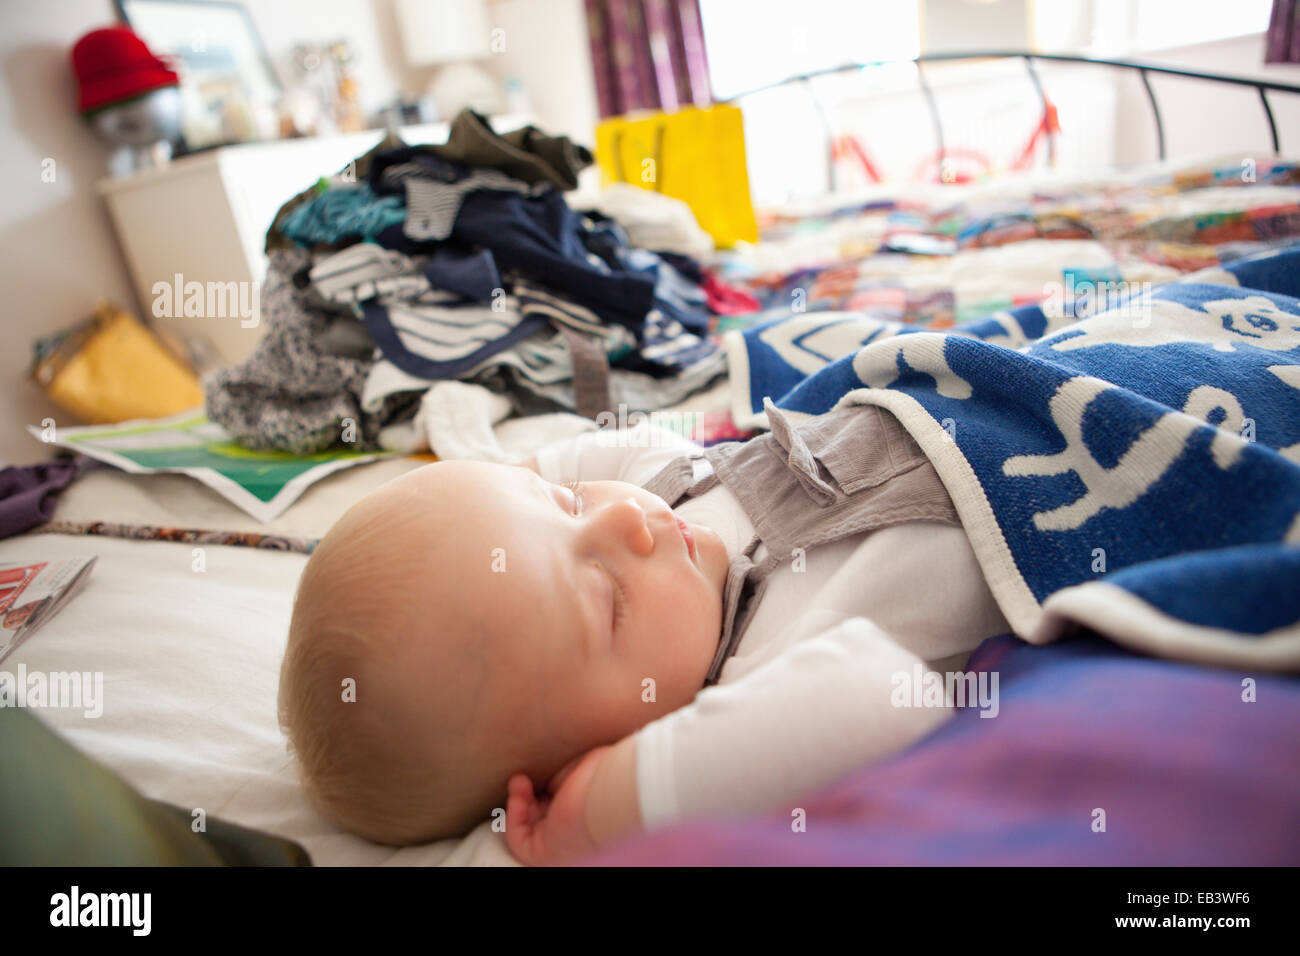 Baby sleeping with piles of laundry in background - Stock Image